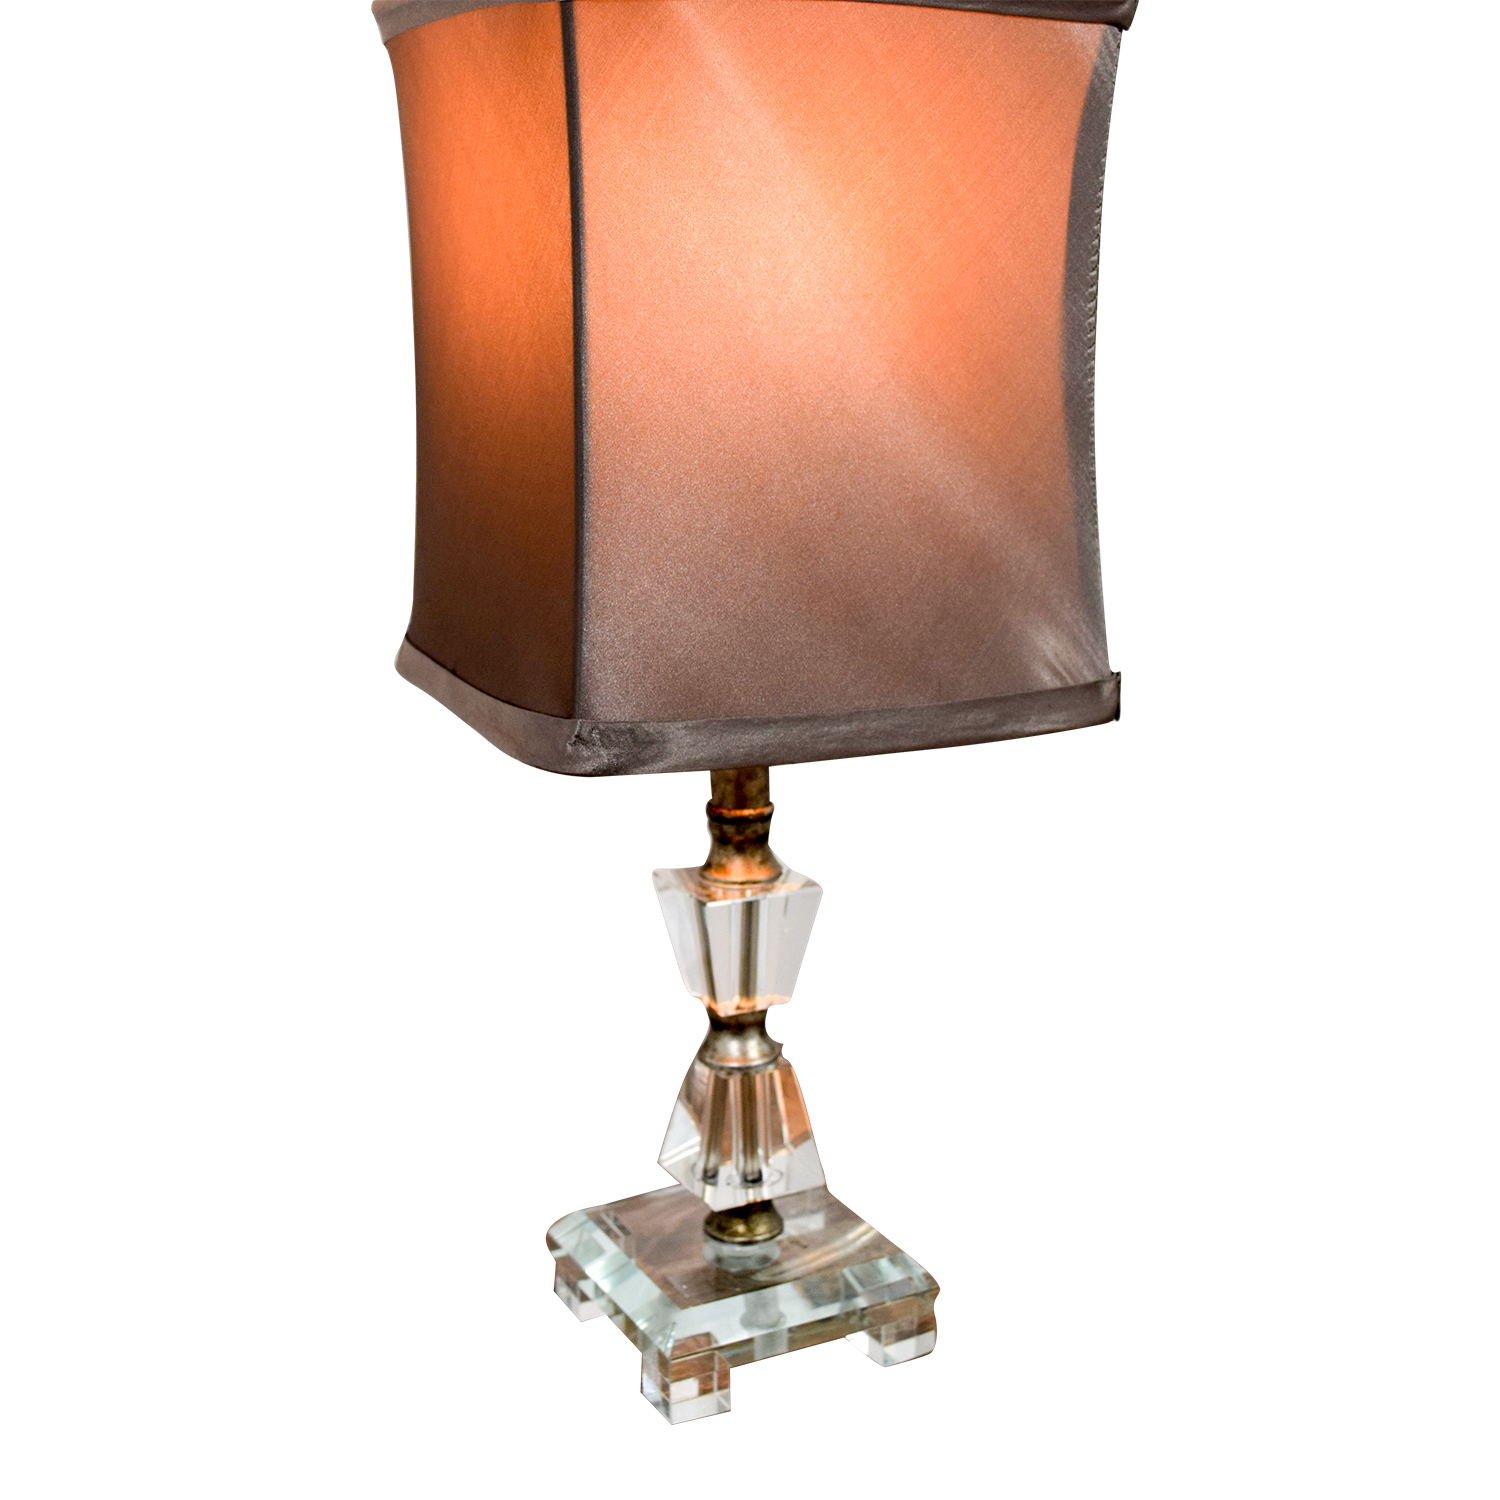 78 Off Pier 1 Imports Pier 1 Imports Crystal Table Lamp